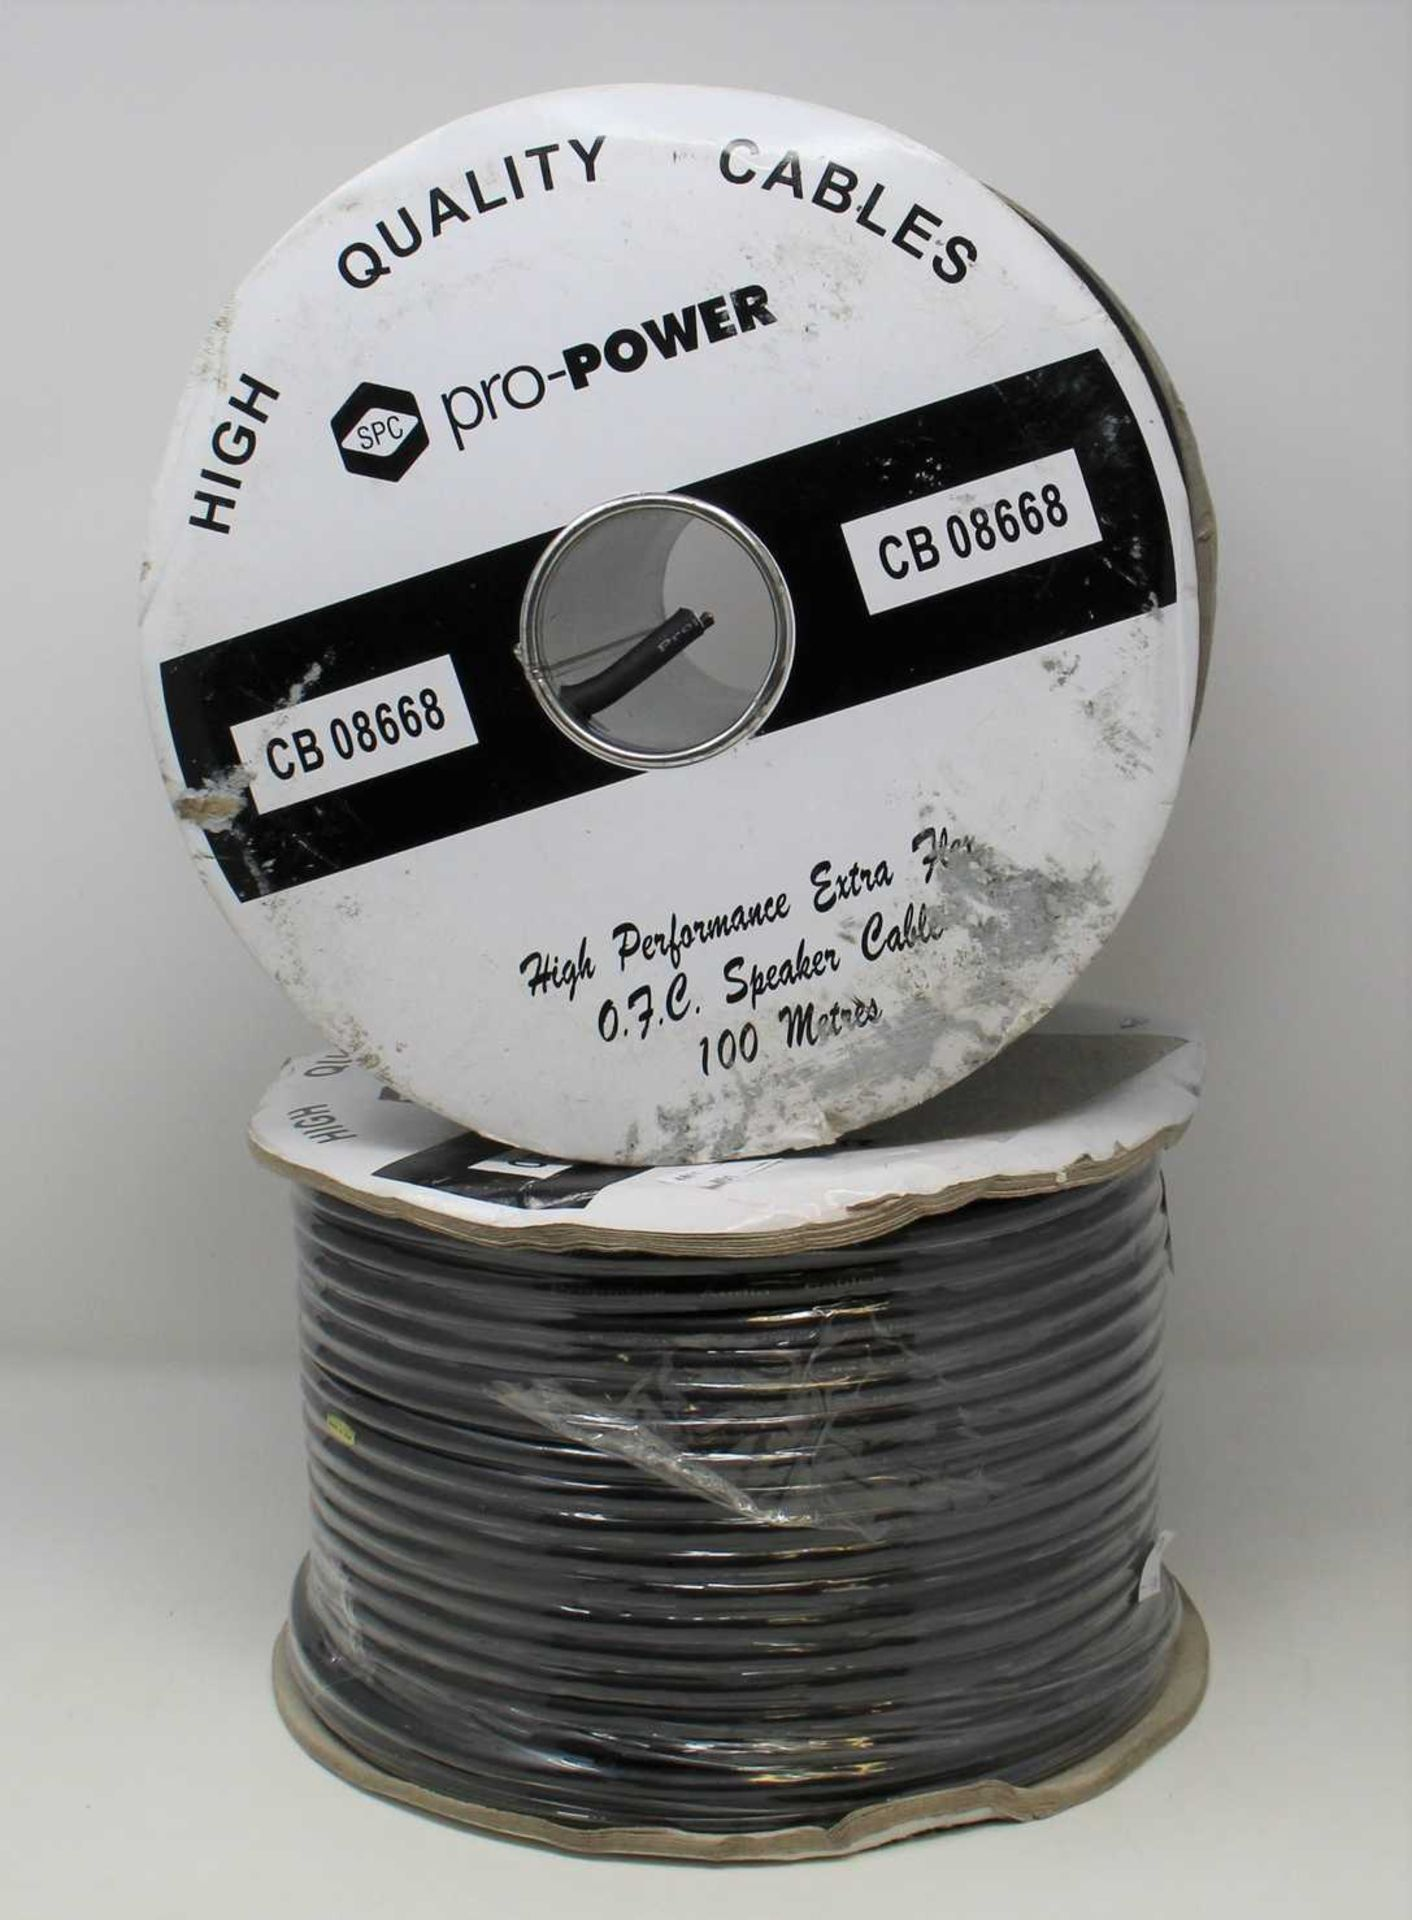 Two as new 100m Reels of SPC Pro-Power CB 08668 High Performance Extra Flex 0.7.C Speaker Cable in